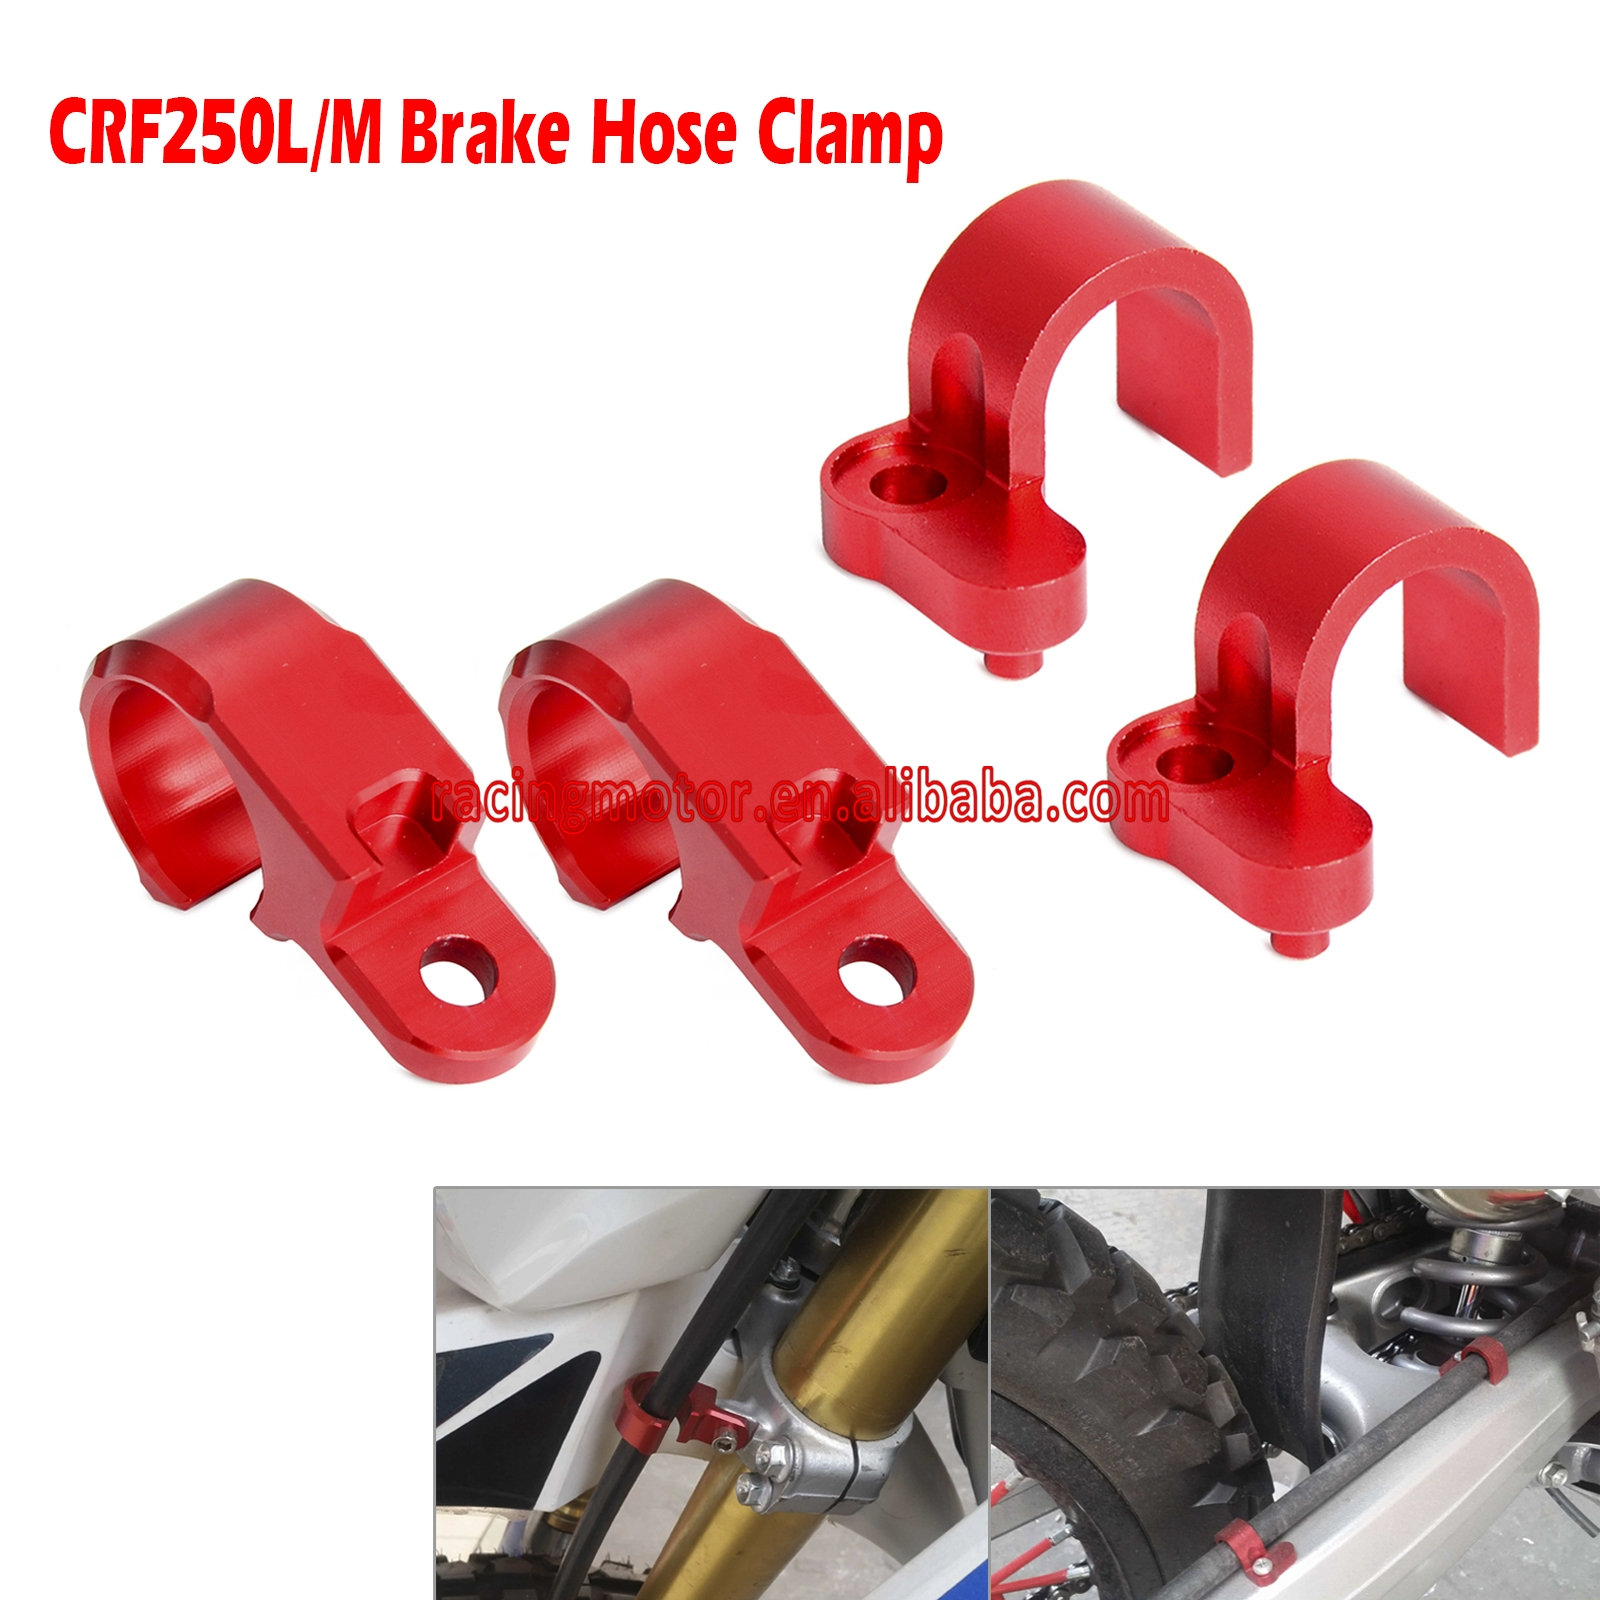 CRF250L Adjustable Kickstand Lowering Side Stand 2015 2016 2017 CRF 250 L